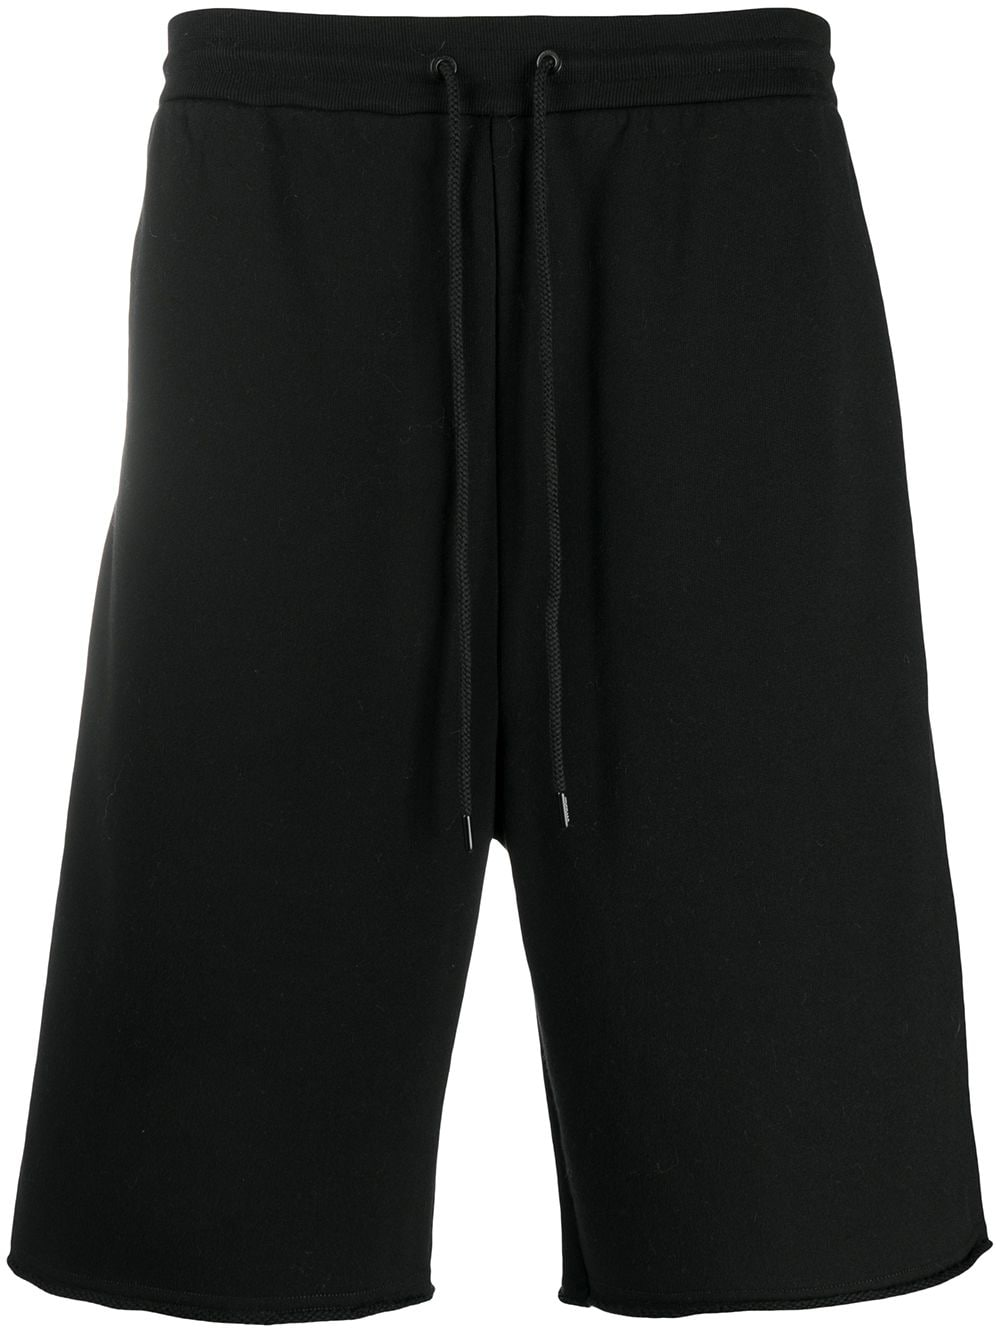 black cotton track shorts with side white printed logo pocket MONCLER GENIUS |  | 8H702-00-809F4999